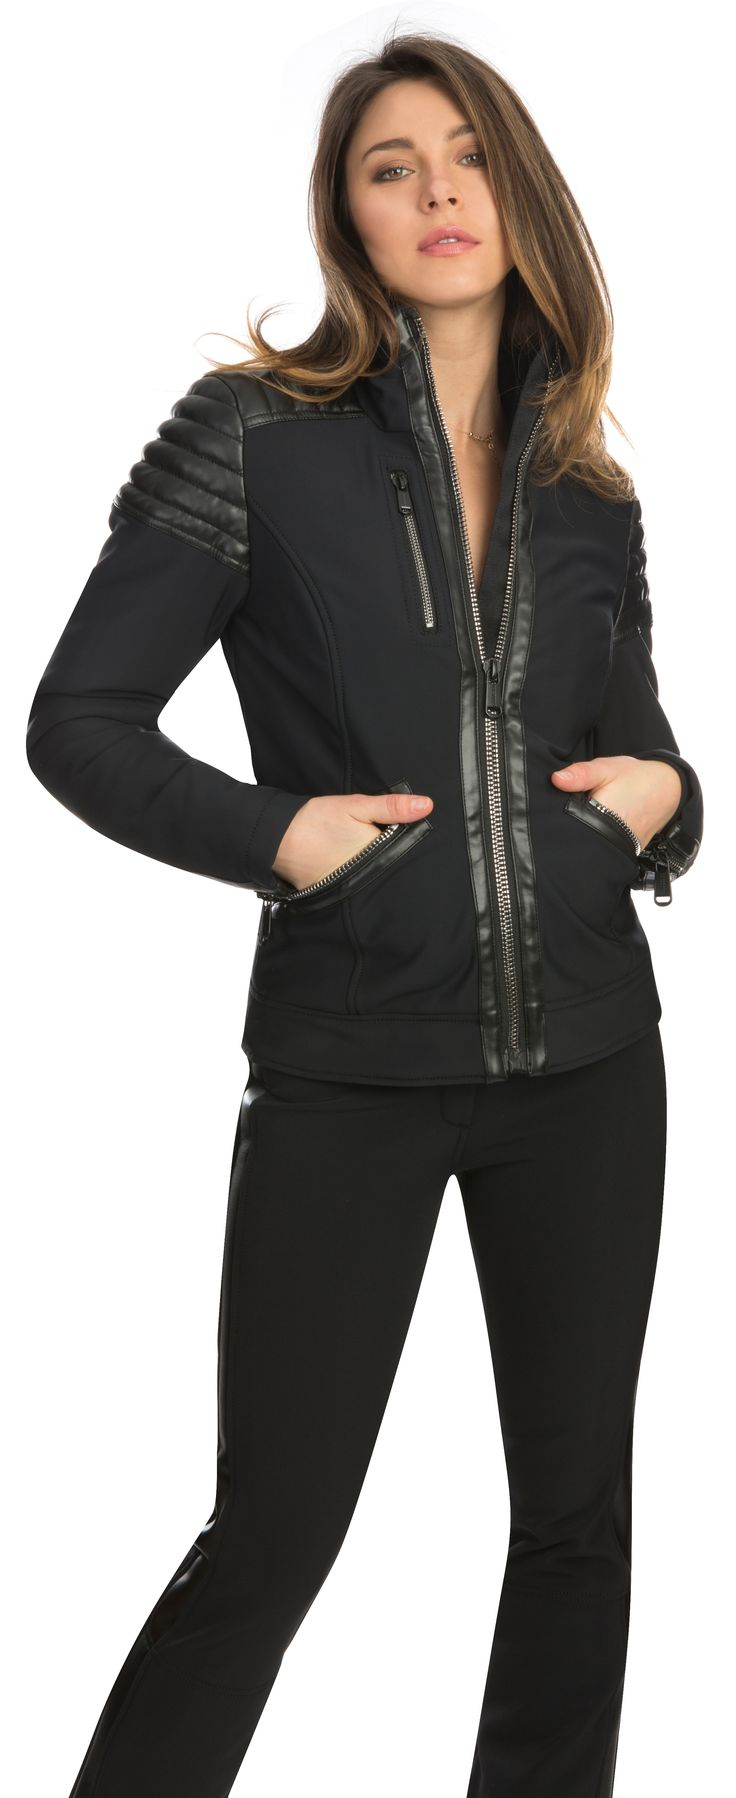 Leonie by Goldbergh, a stretch ski jacket in biker chic with faux leather details. Available from Winternational.